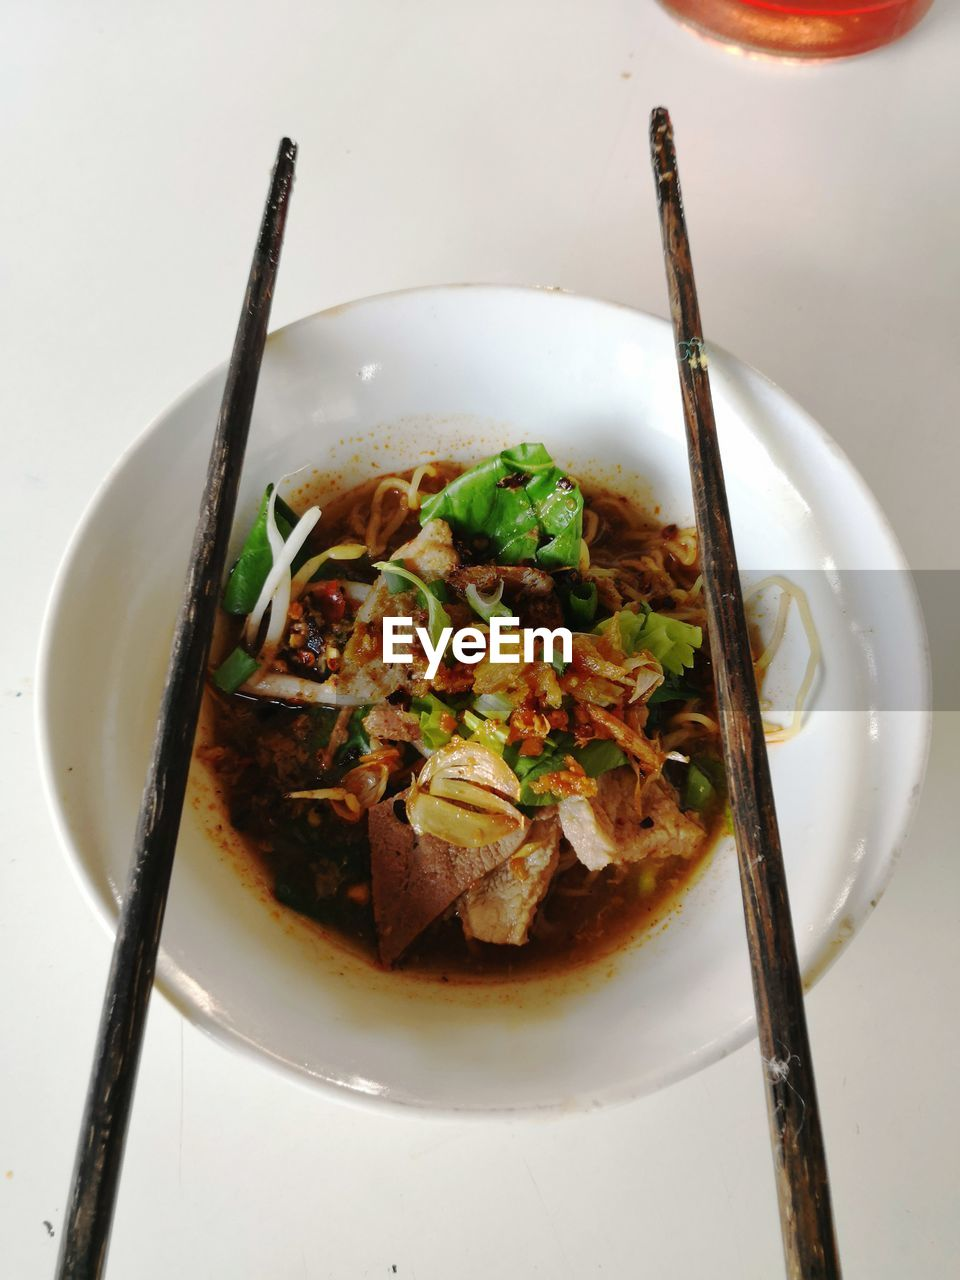 ready-to-eat, food, freshness, indoors, chopsticks, kitchen utensil, food and drink, eating utensil, bowl, healthy eating, spoon, table, no people, close-up, still life, wellbeing, high angle view, serving size, meal, plate, garnish, chinese food, temptation